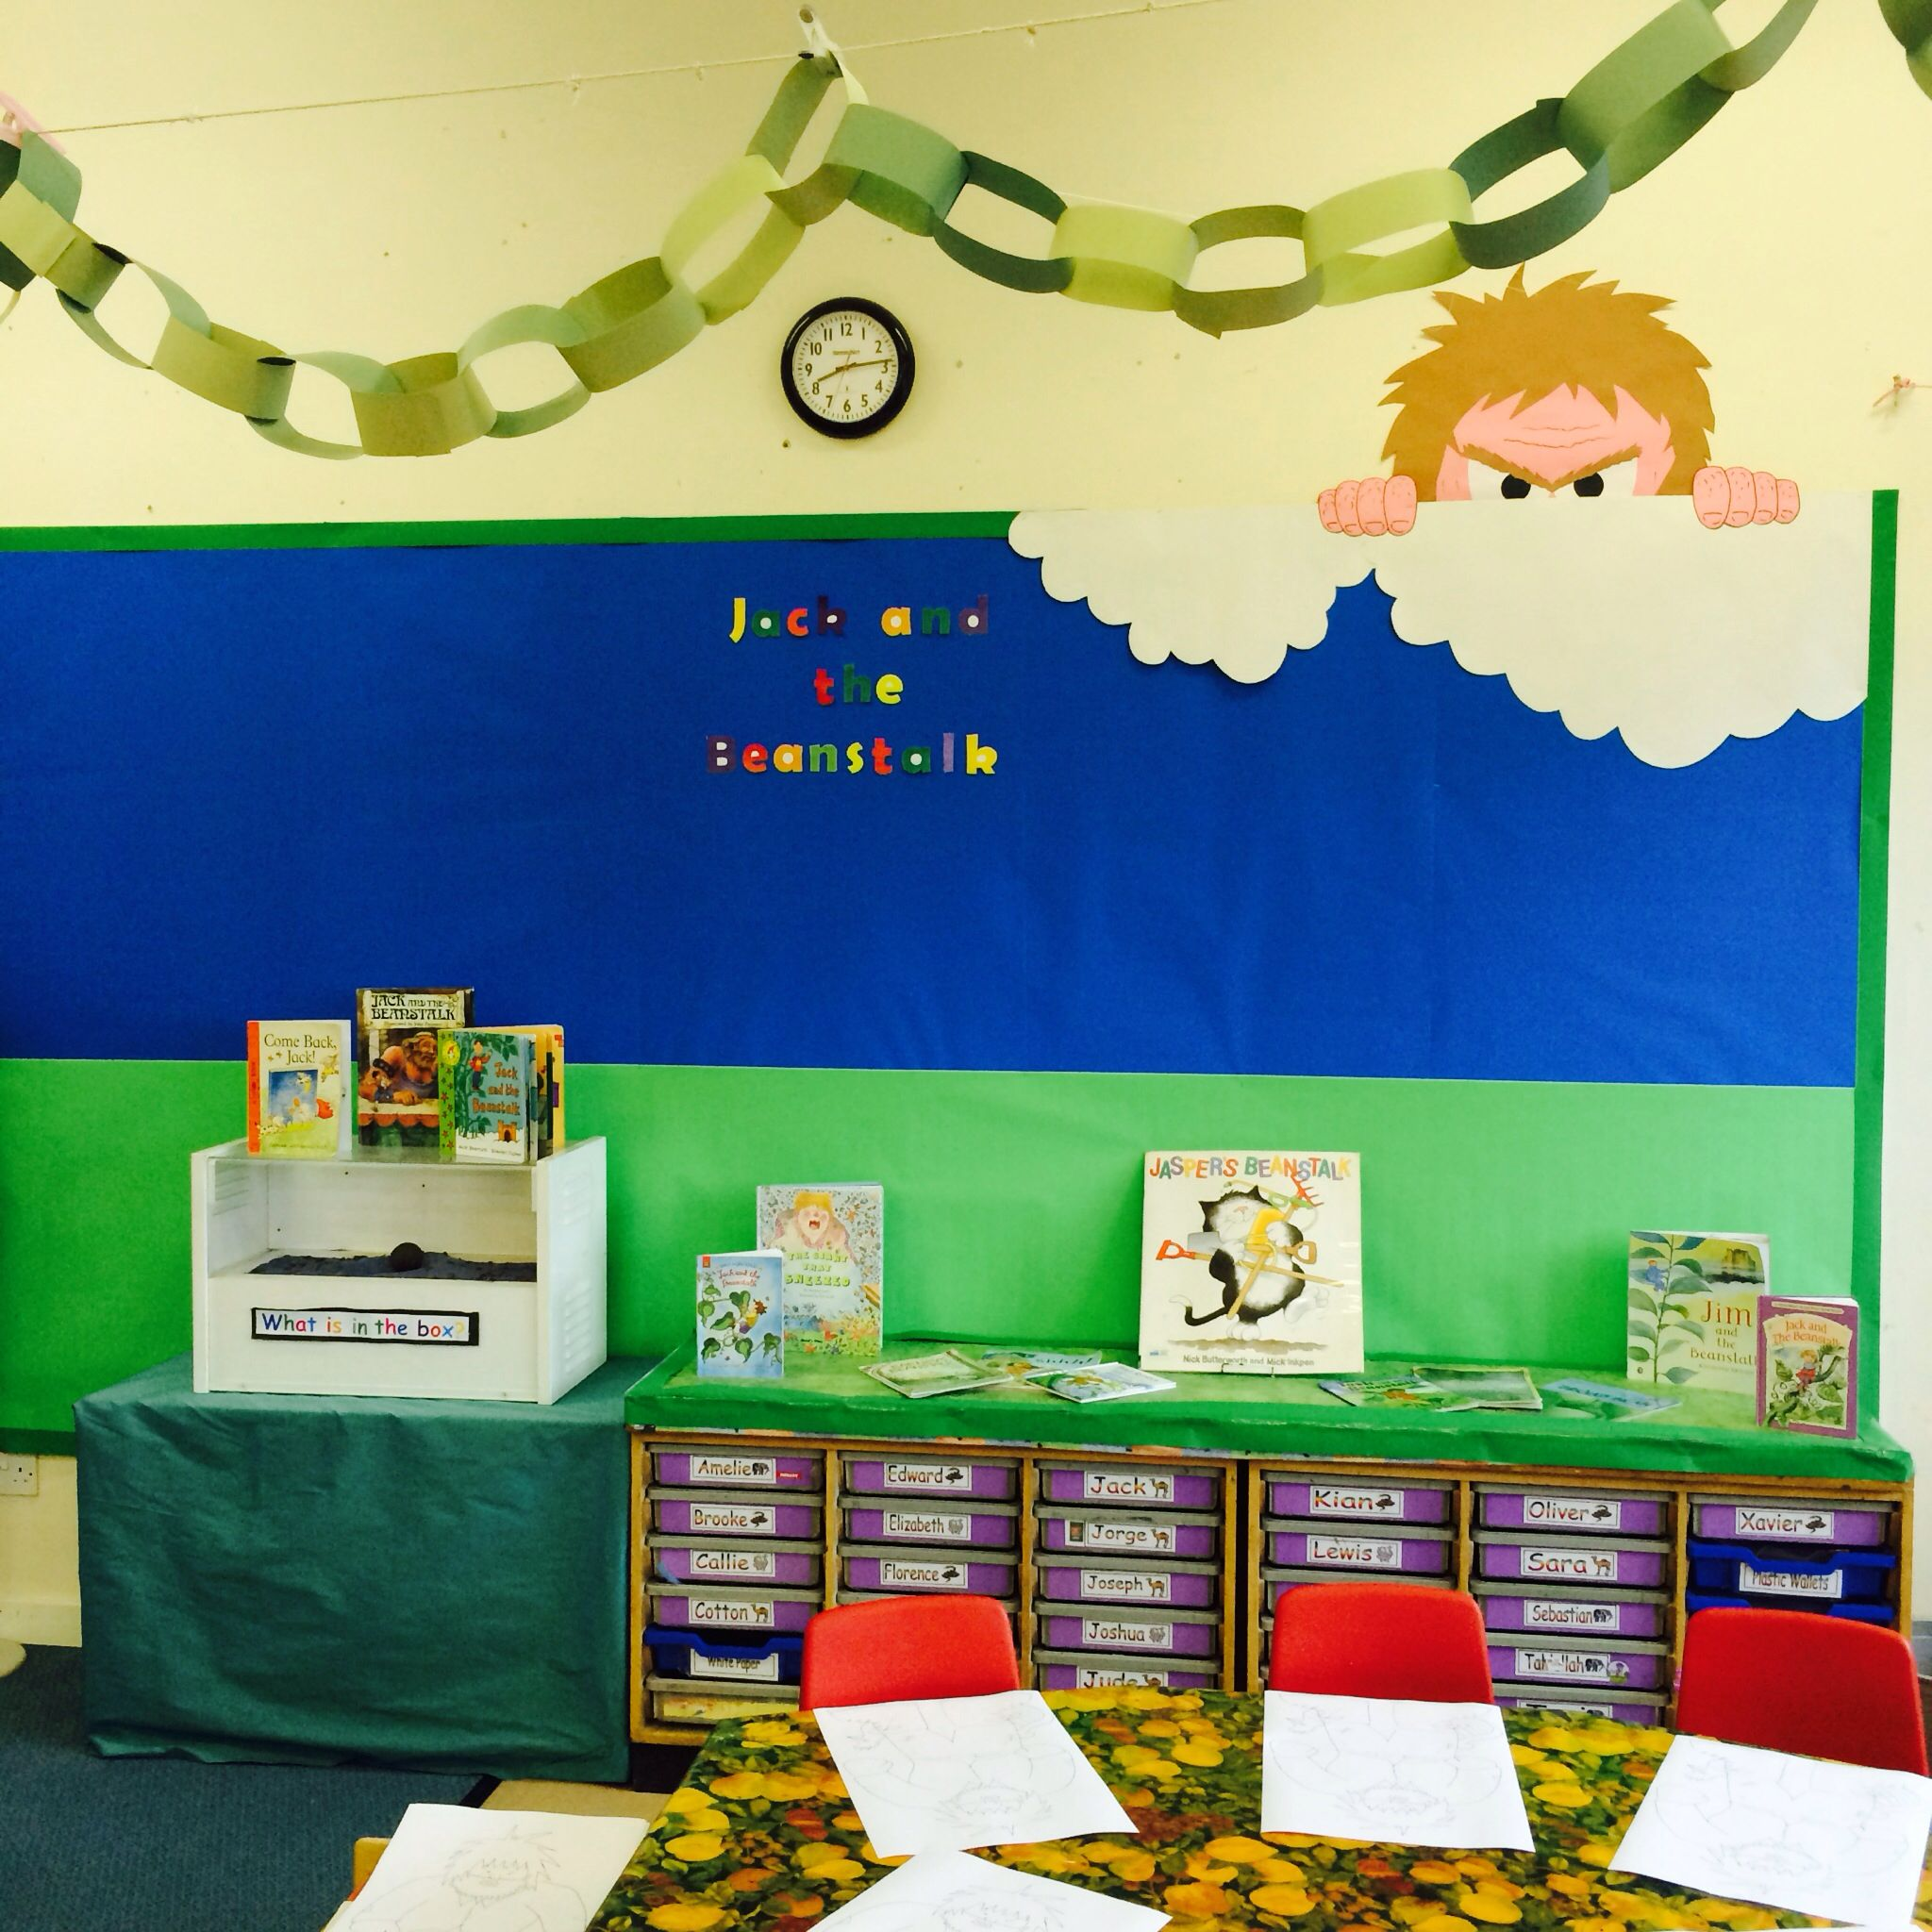 Jack And The Beanstalk Classroom Didplay